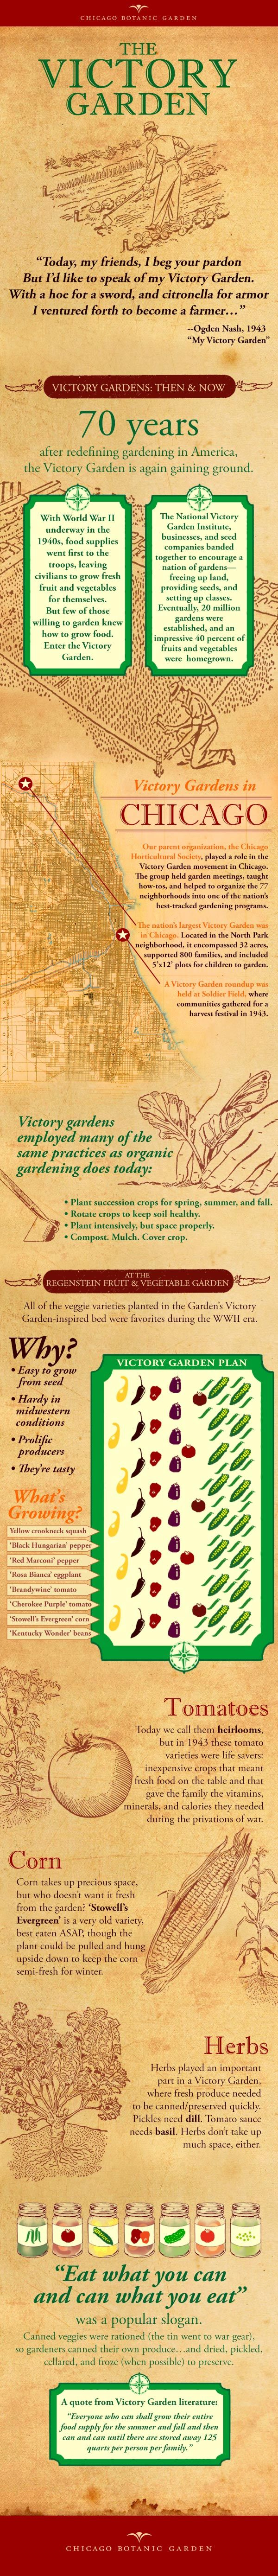 best 25 victory garden ideas on pinterest the homestead victory definition and start of ww2. Black Bedroom Furniture Sets. Home Design Ideas